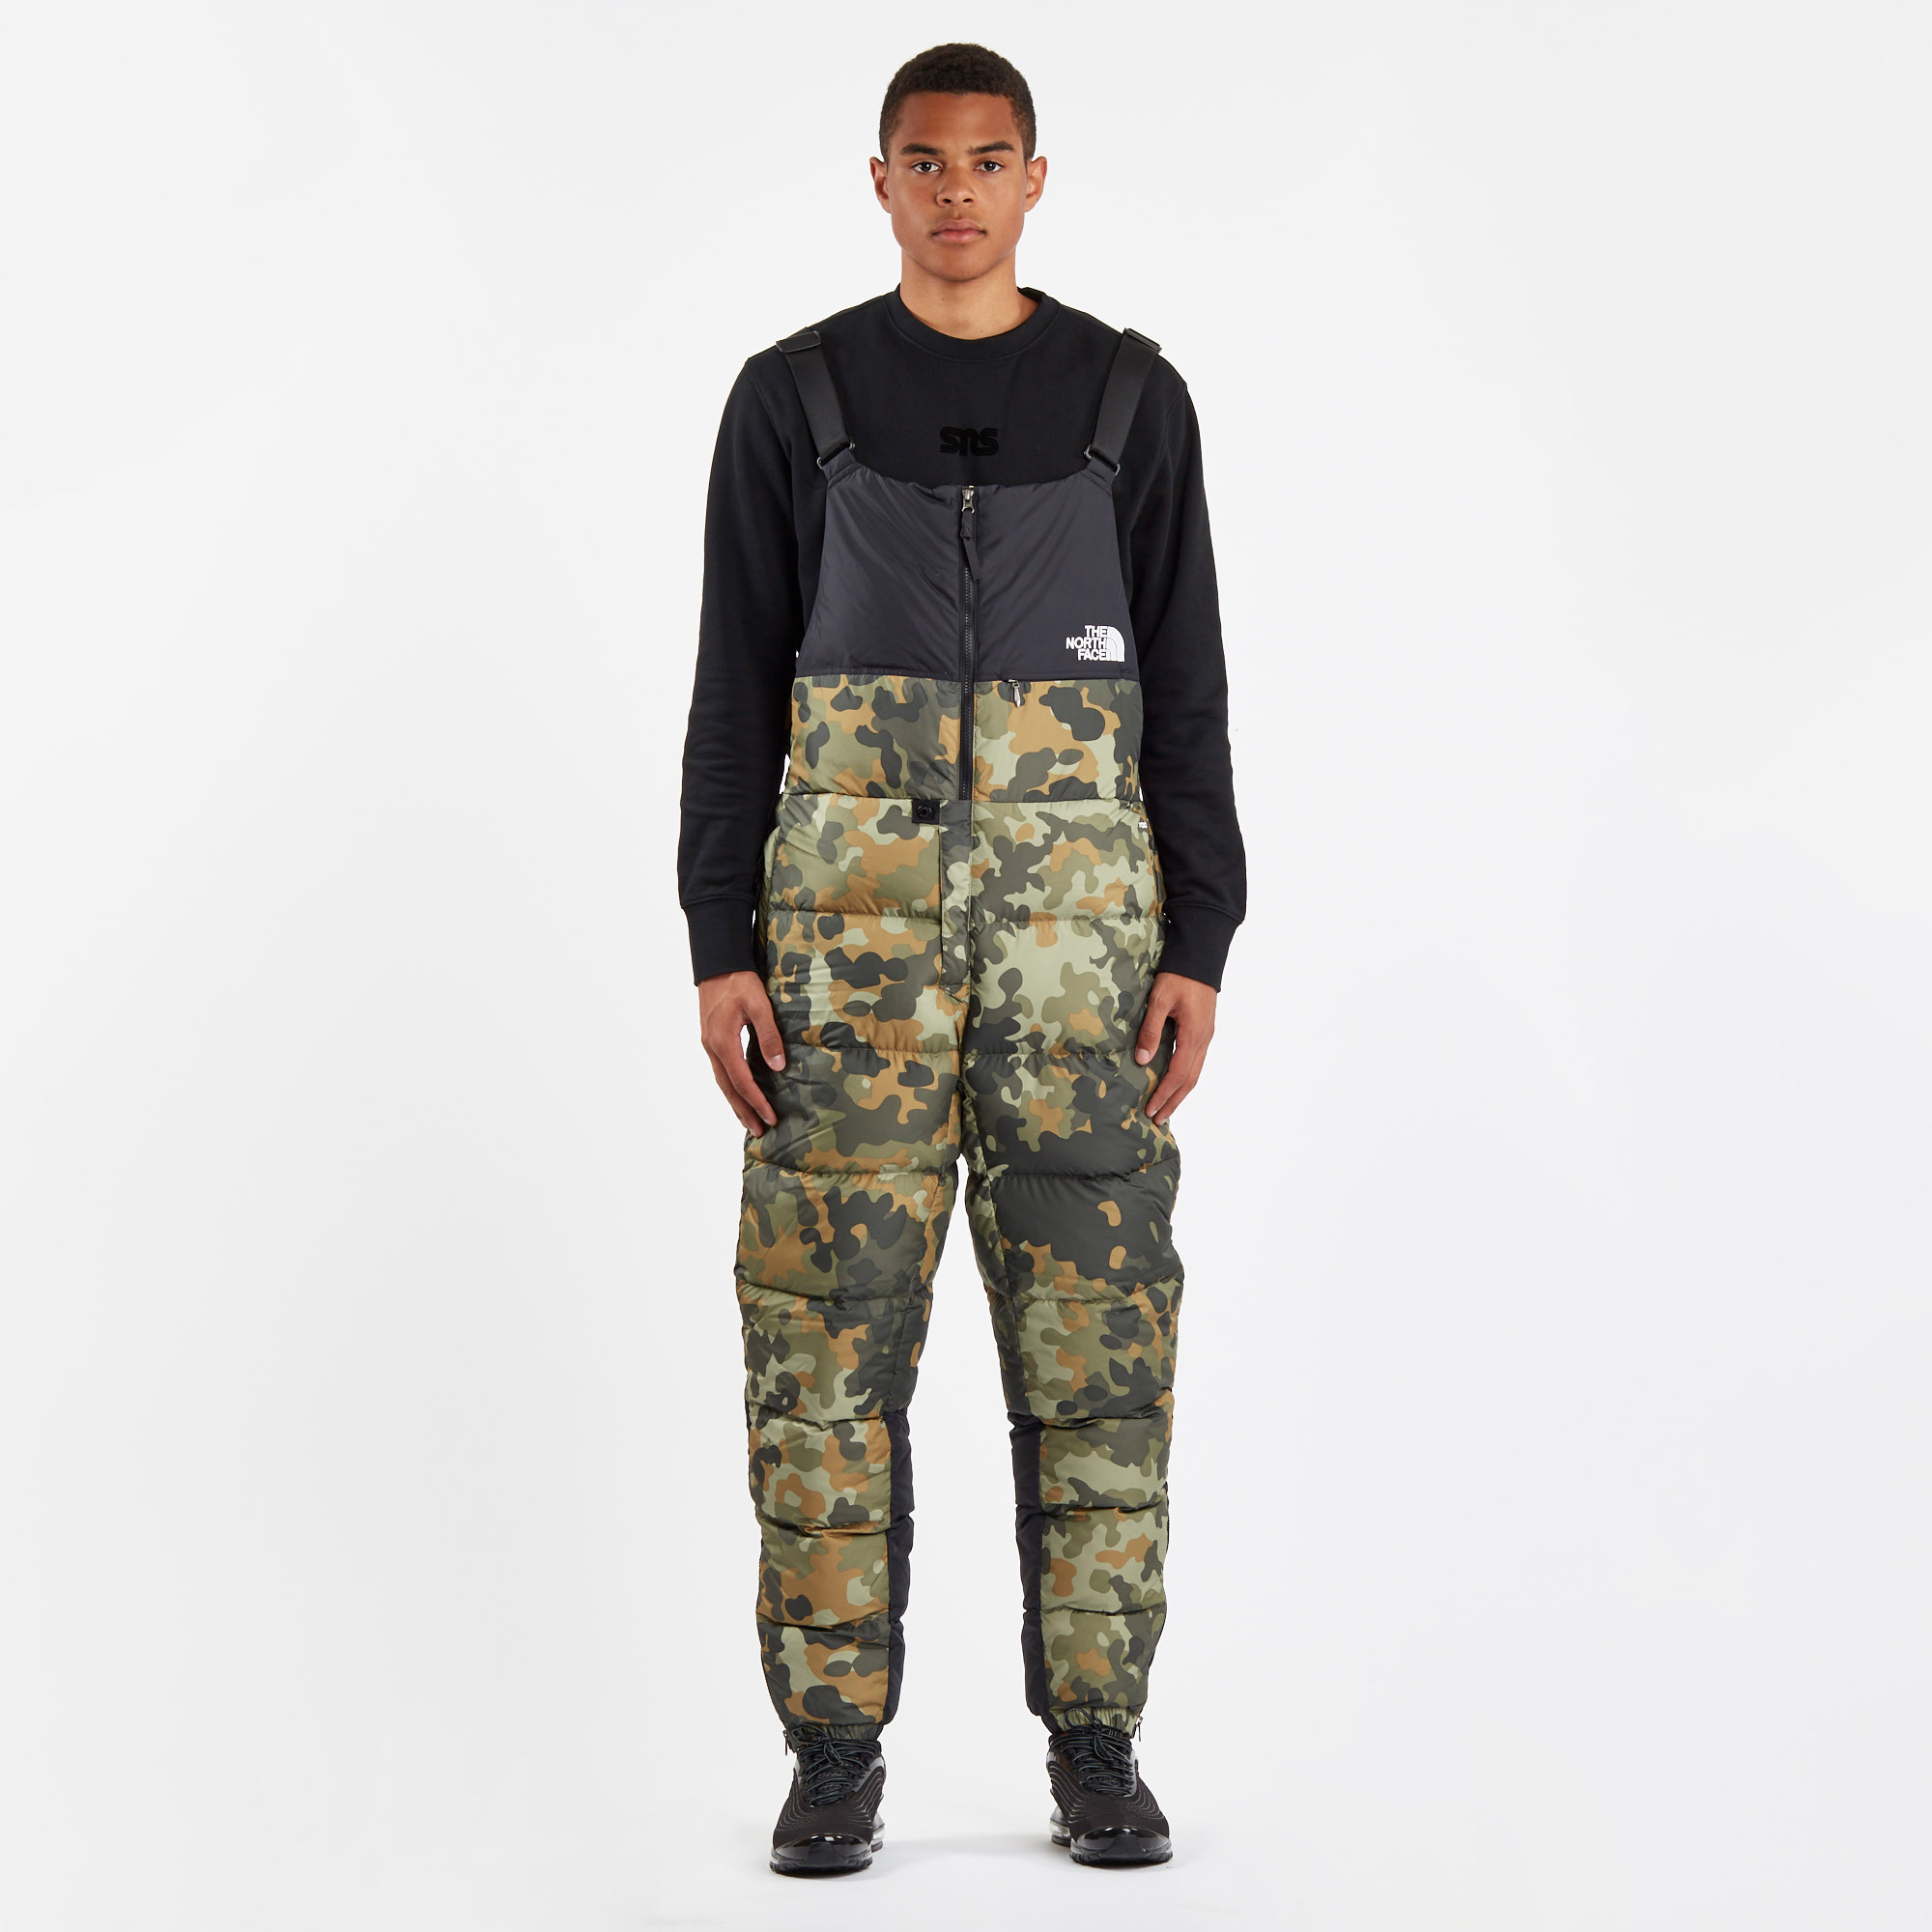 3672cbab185c2 The North Face Nuptse Bib - Nf0a3mh65xp - Sneakersnstuff   sneakers ...